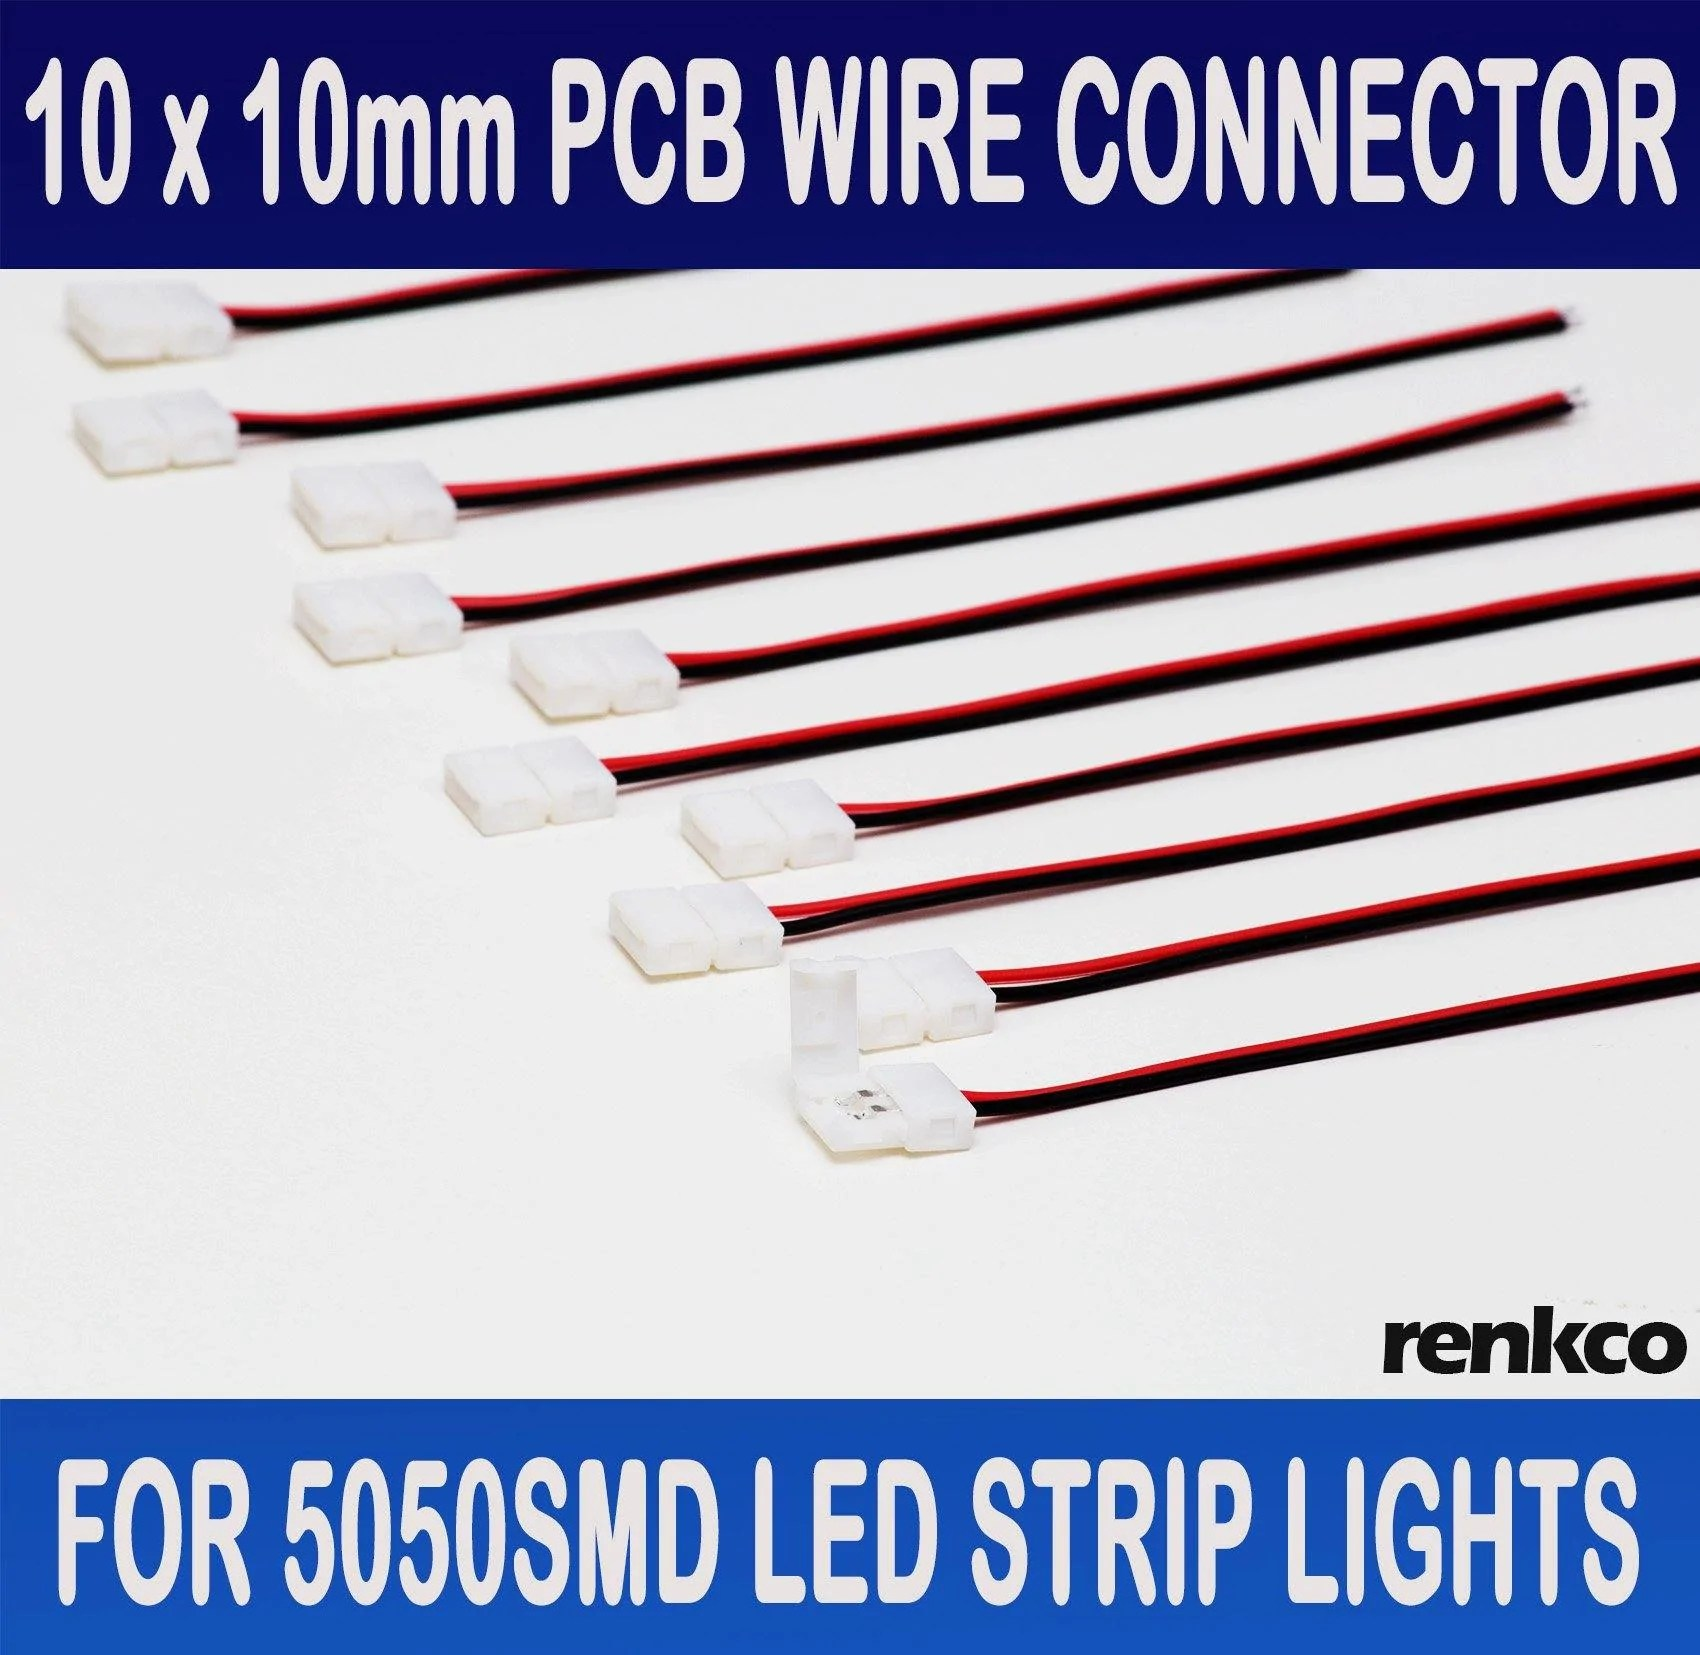 small resolution of renkco renkco 10pcs 10mm pcb board with wire connector for 5050 led strip lights oz